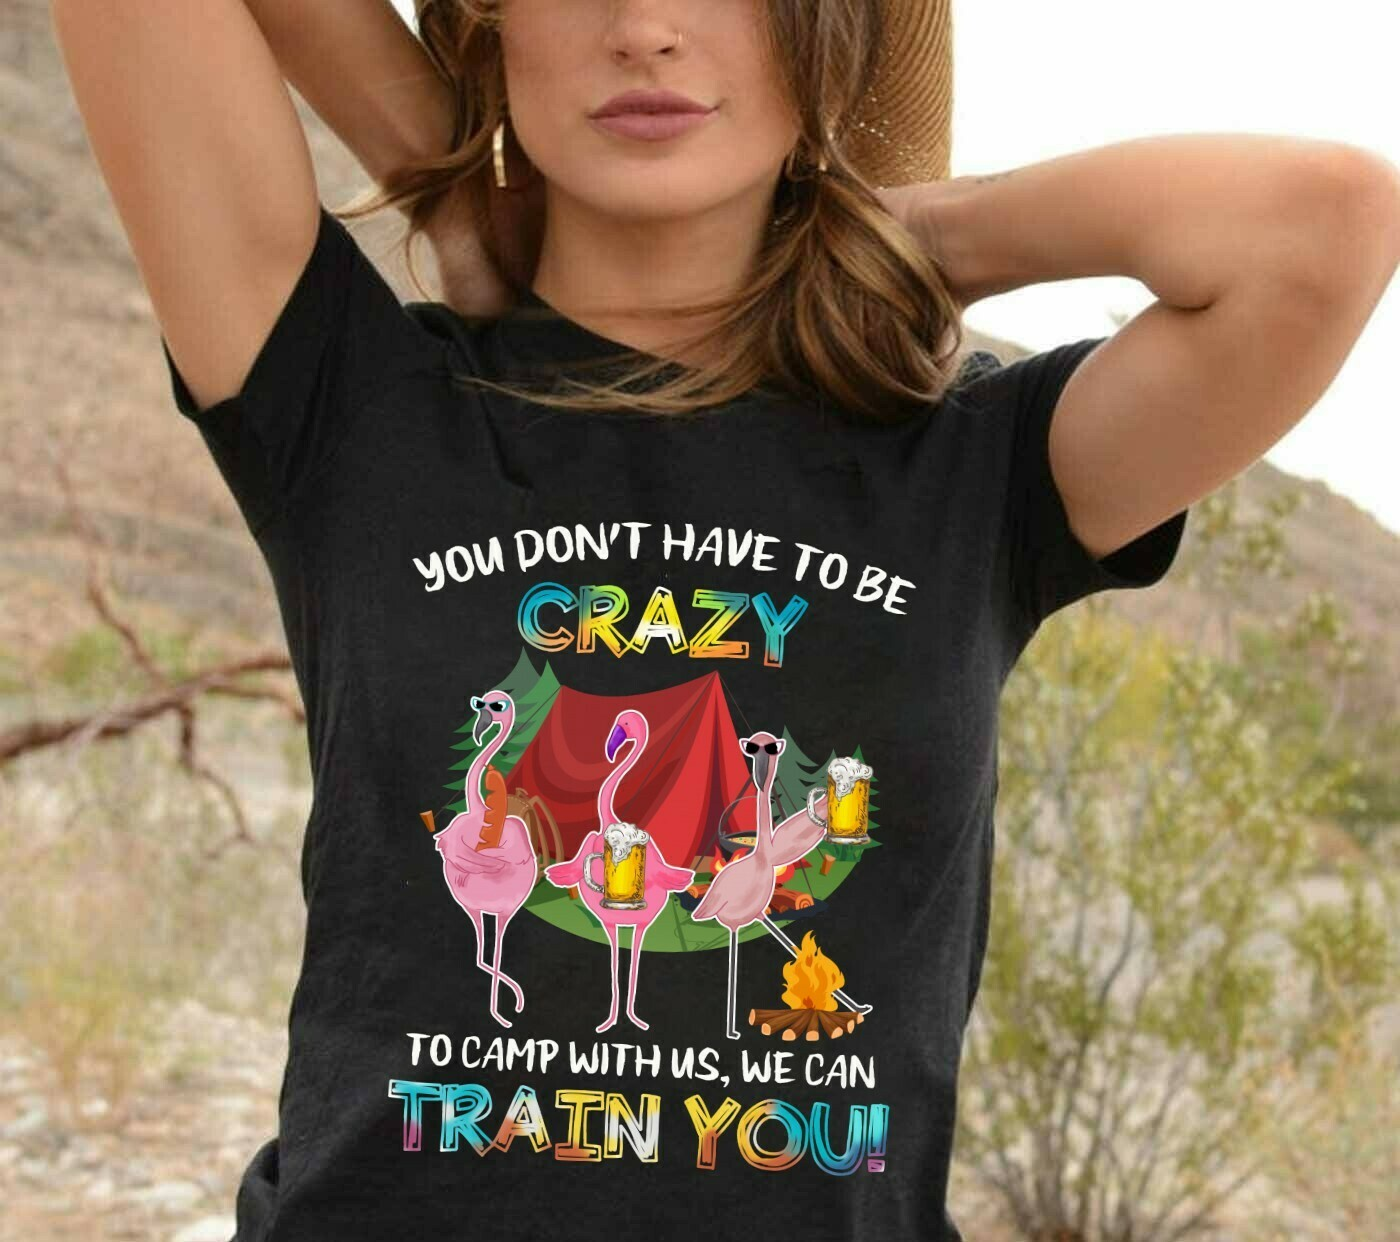 You Don't Have To Be Crazy To Camp With Us, We Can Train You Funny Flamingo Party Vacation Gift For Friends Team Group Camping Girls T Shirt Long Sleeve Sweatshirt Hoodie Jolly Family Gifts